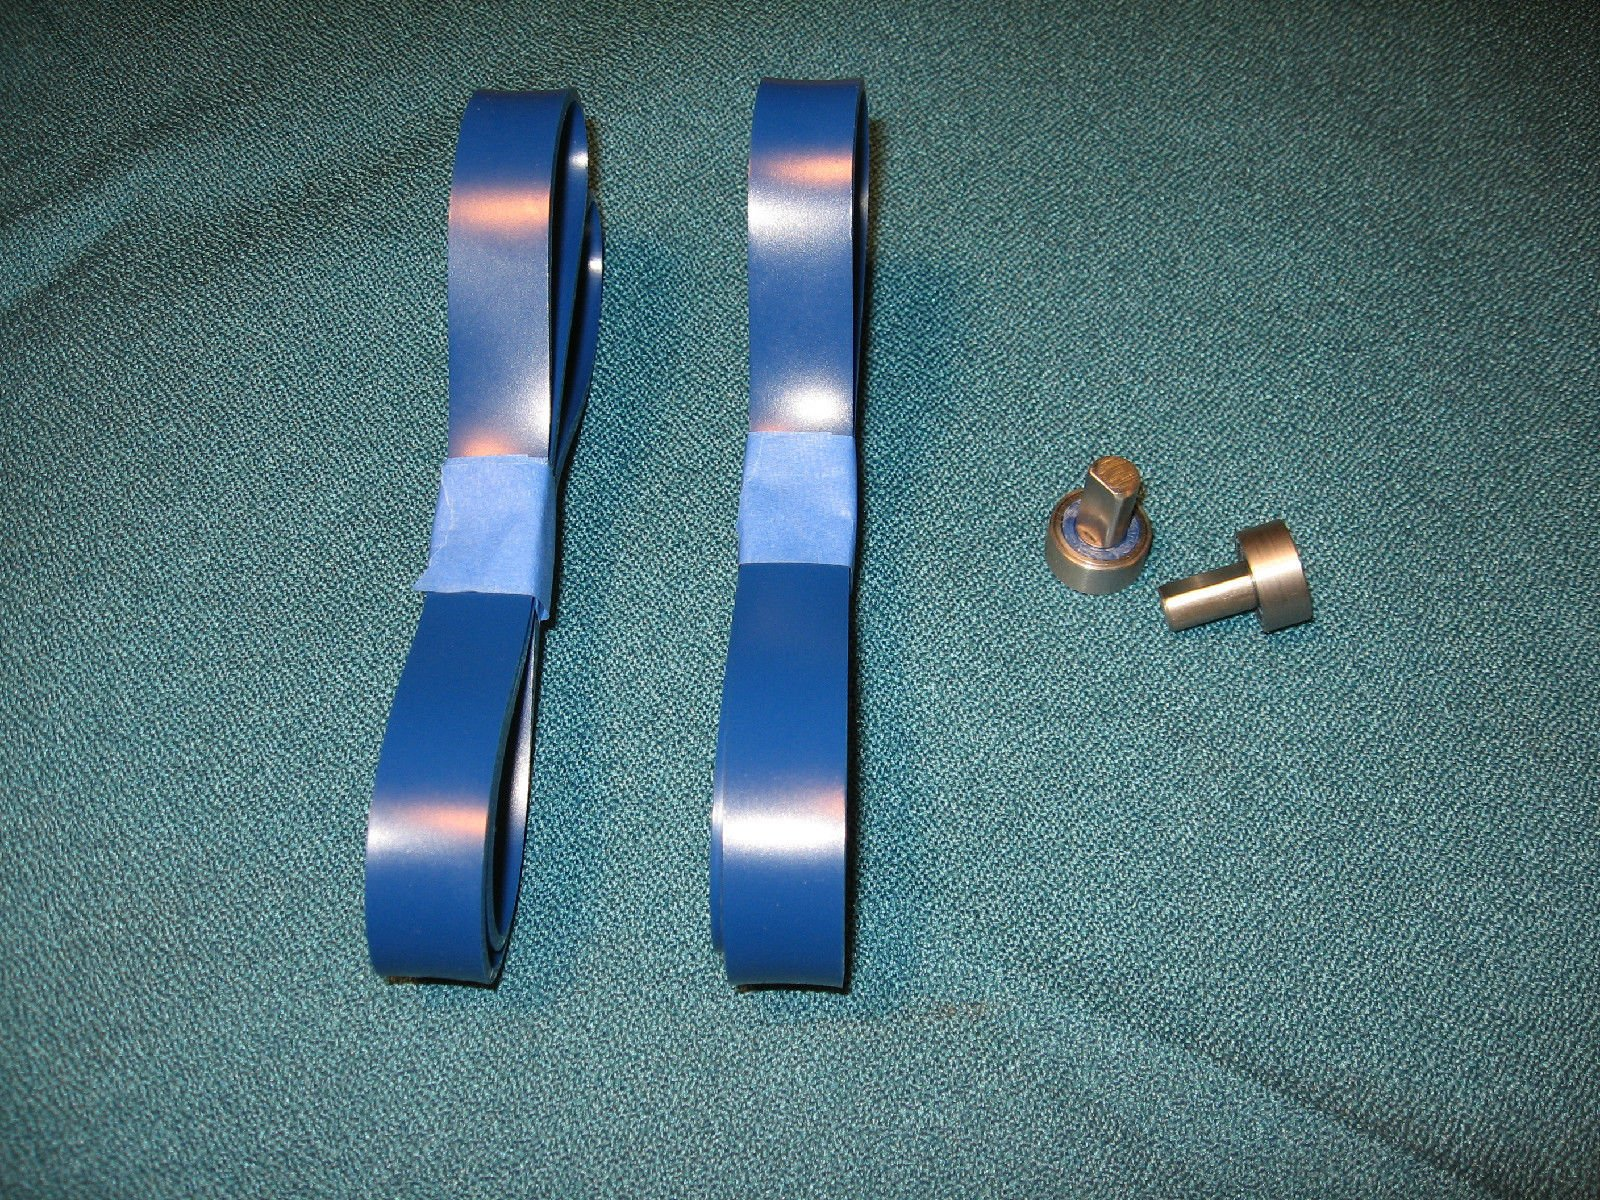 Workmas New Heavy Duty Band Saw Urethane Blue Max Tire Set AND THRUST BEARINGS FOR ROCKWELL DELTA MODEL 28-110